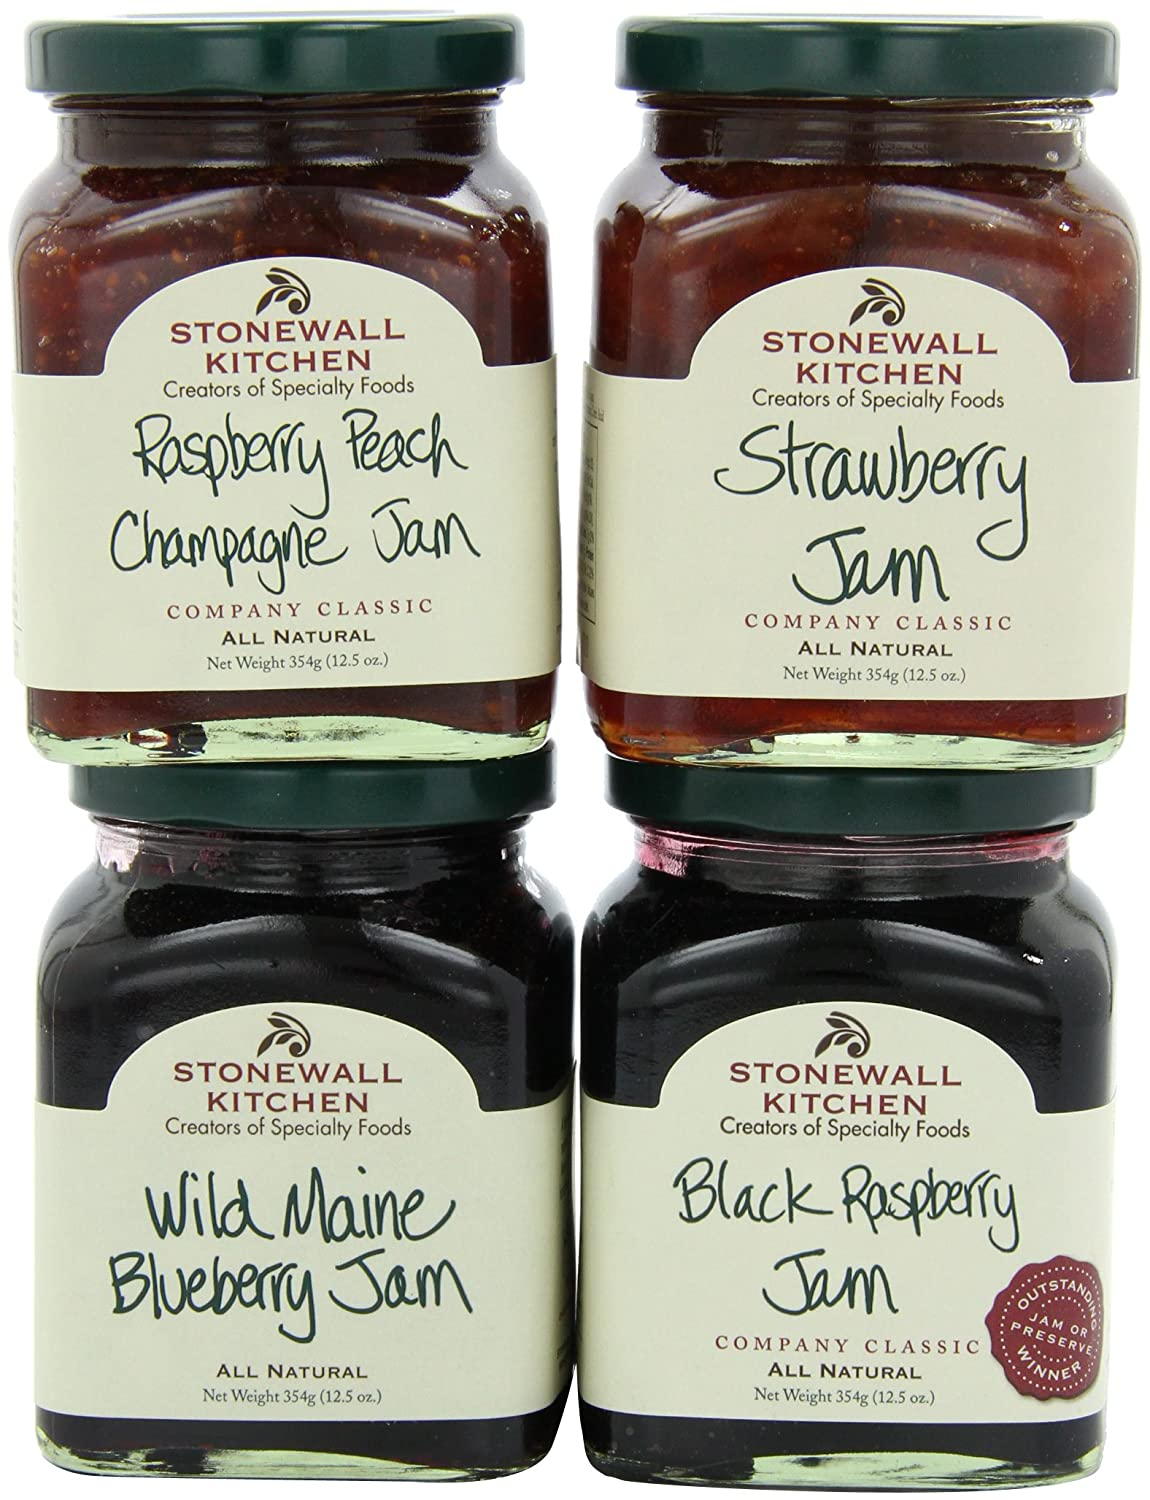 amazoncom stonewall kitchen all natural jam collection jams and preserves grocery gourmet food - Stonewall Kitchen Jam